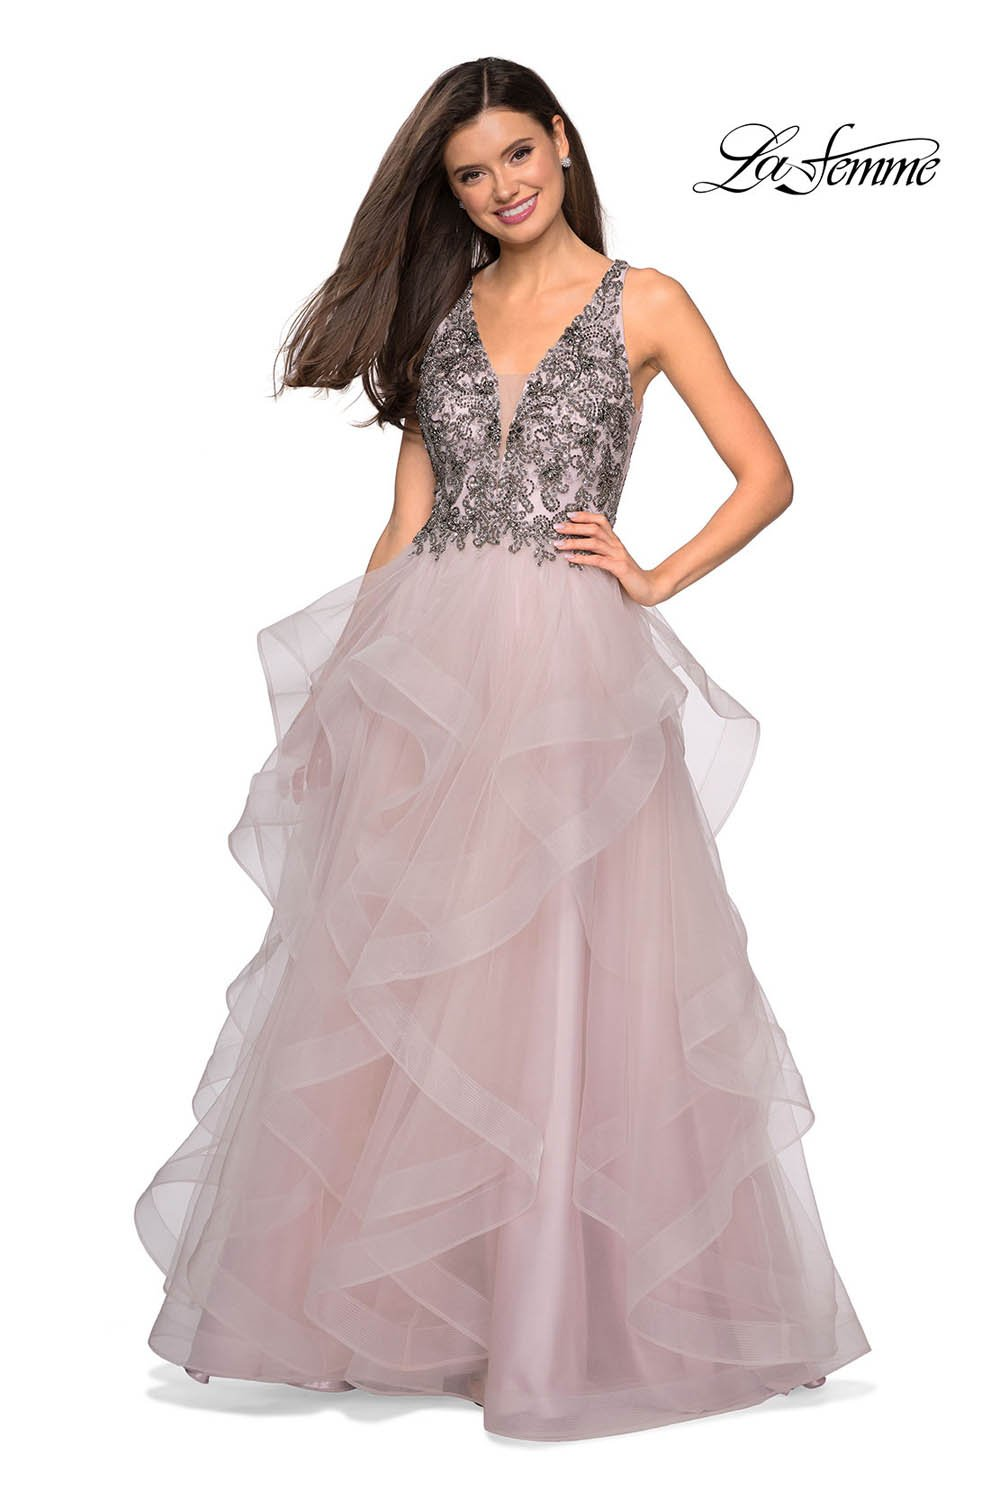 Gigi by La Femme 27649 prom dress images.  Gigi by La Femme 27649 is available in these colors: Dusty Pink, Gunmetal, Navy.